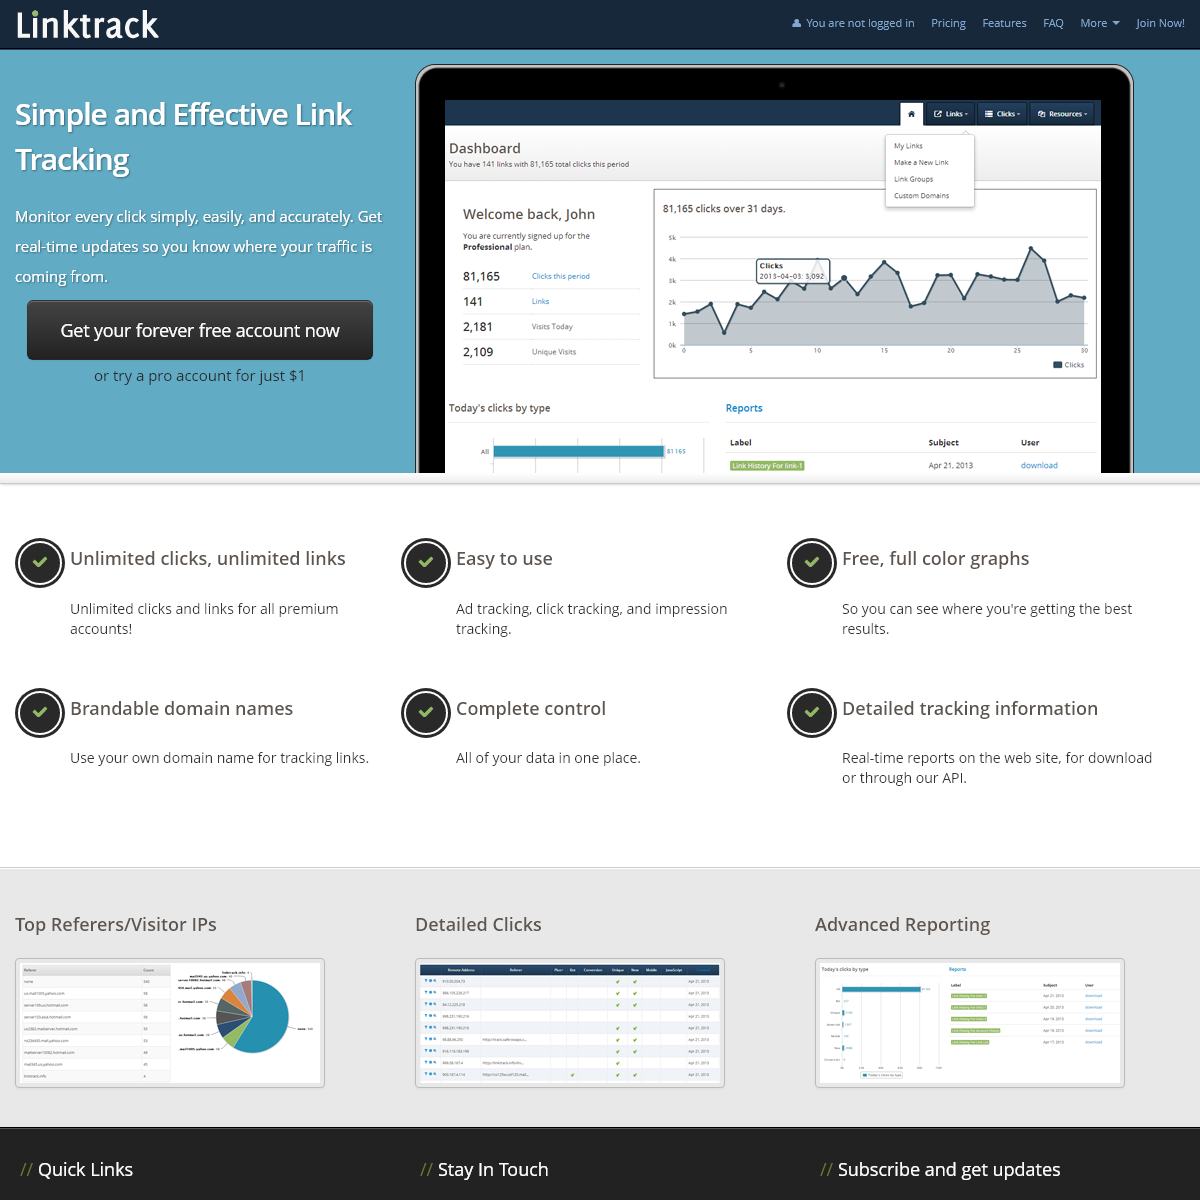 Linktrack.info - The Best Link Tracker and Ad Tracker Ever